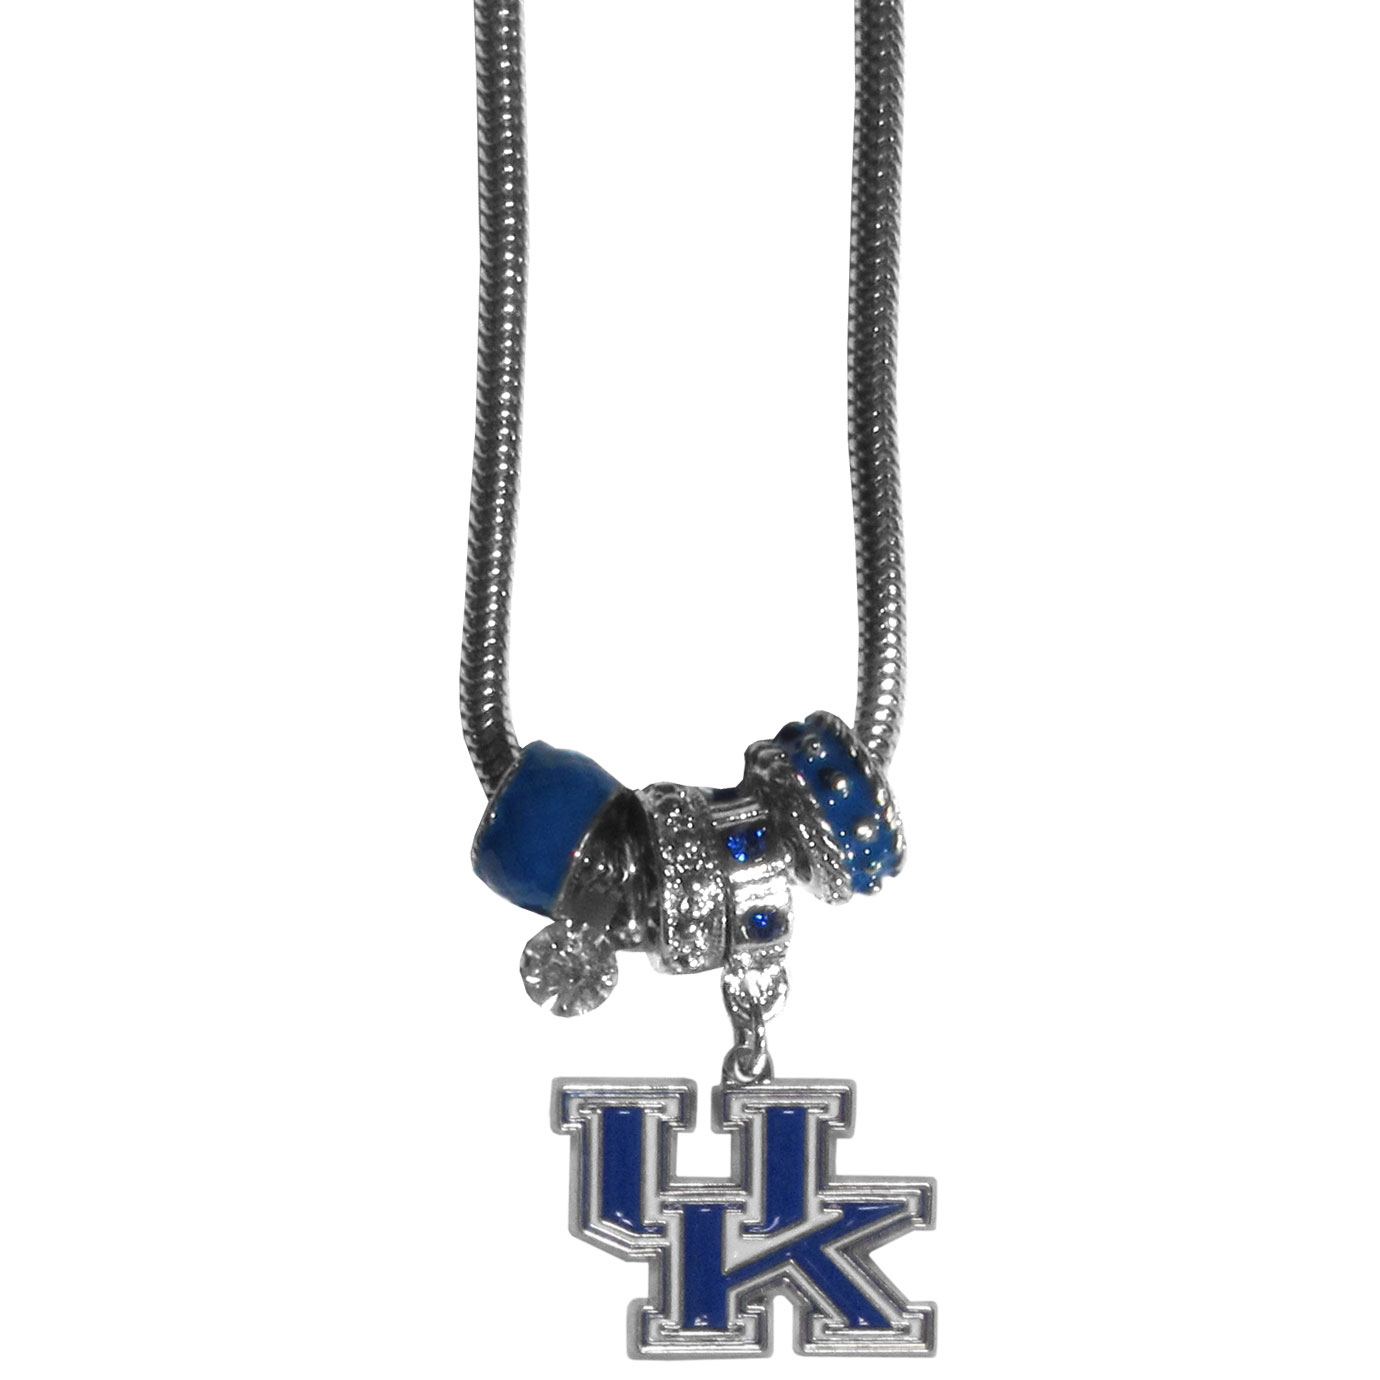 Kentucky Wildcats Euro Bead Necklace - We have combined the wildly popular Euro style beads with your favorite team to create our Kentucky Wildcats bead necklace. The 18 inch snake chain features 4 Euro beads with enameled team colors and rhinestone accents with a high polish, nickel free charm and rhinestone charm. Perfect way to show off your team pride.